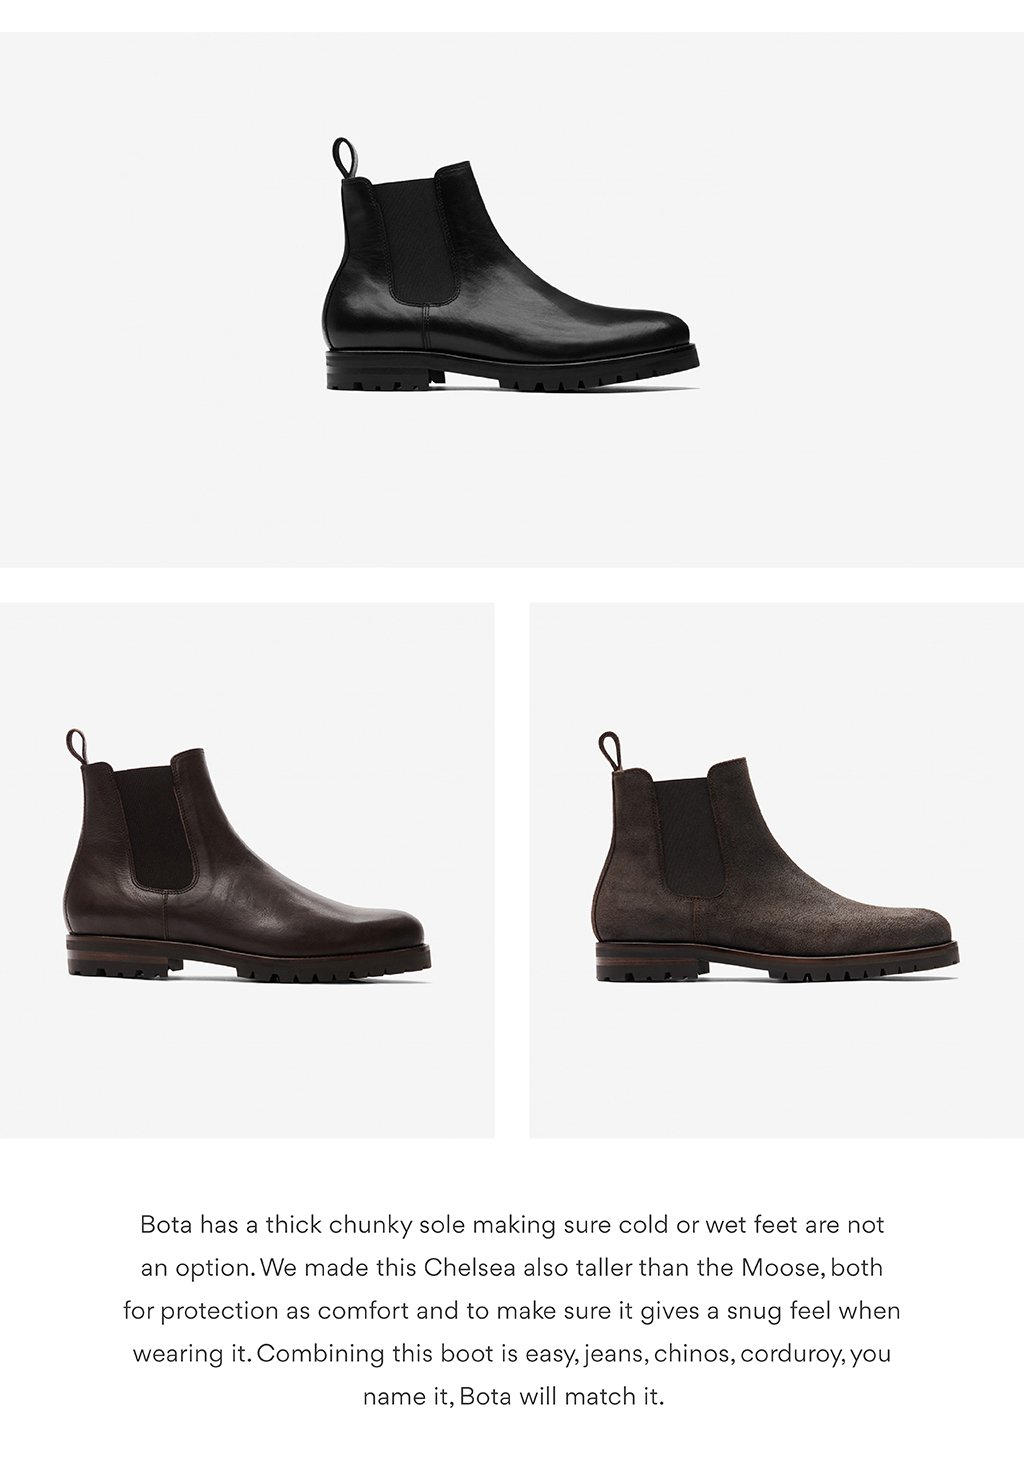 No Label NL: The Brand New Chelsea Boot